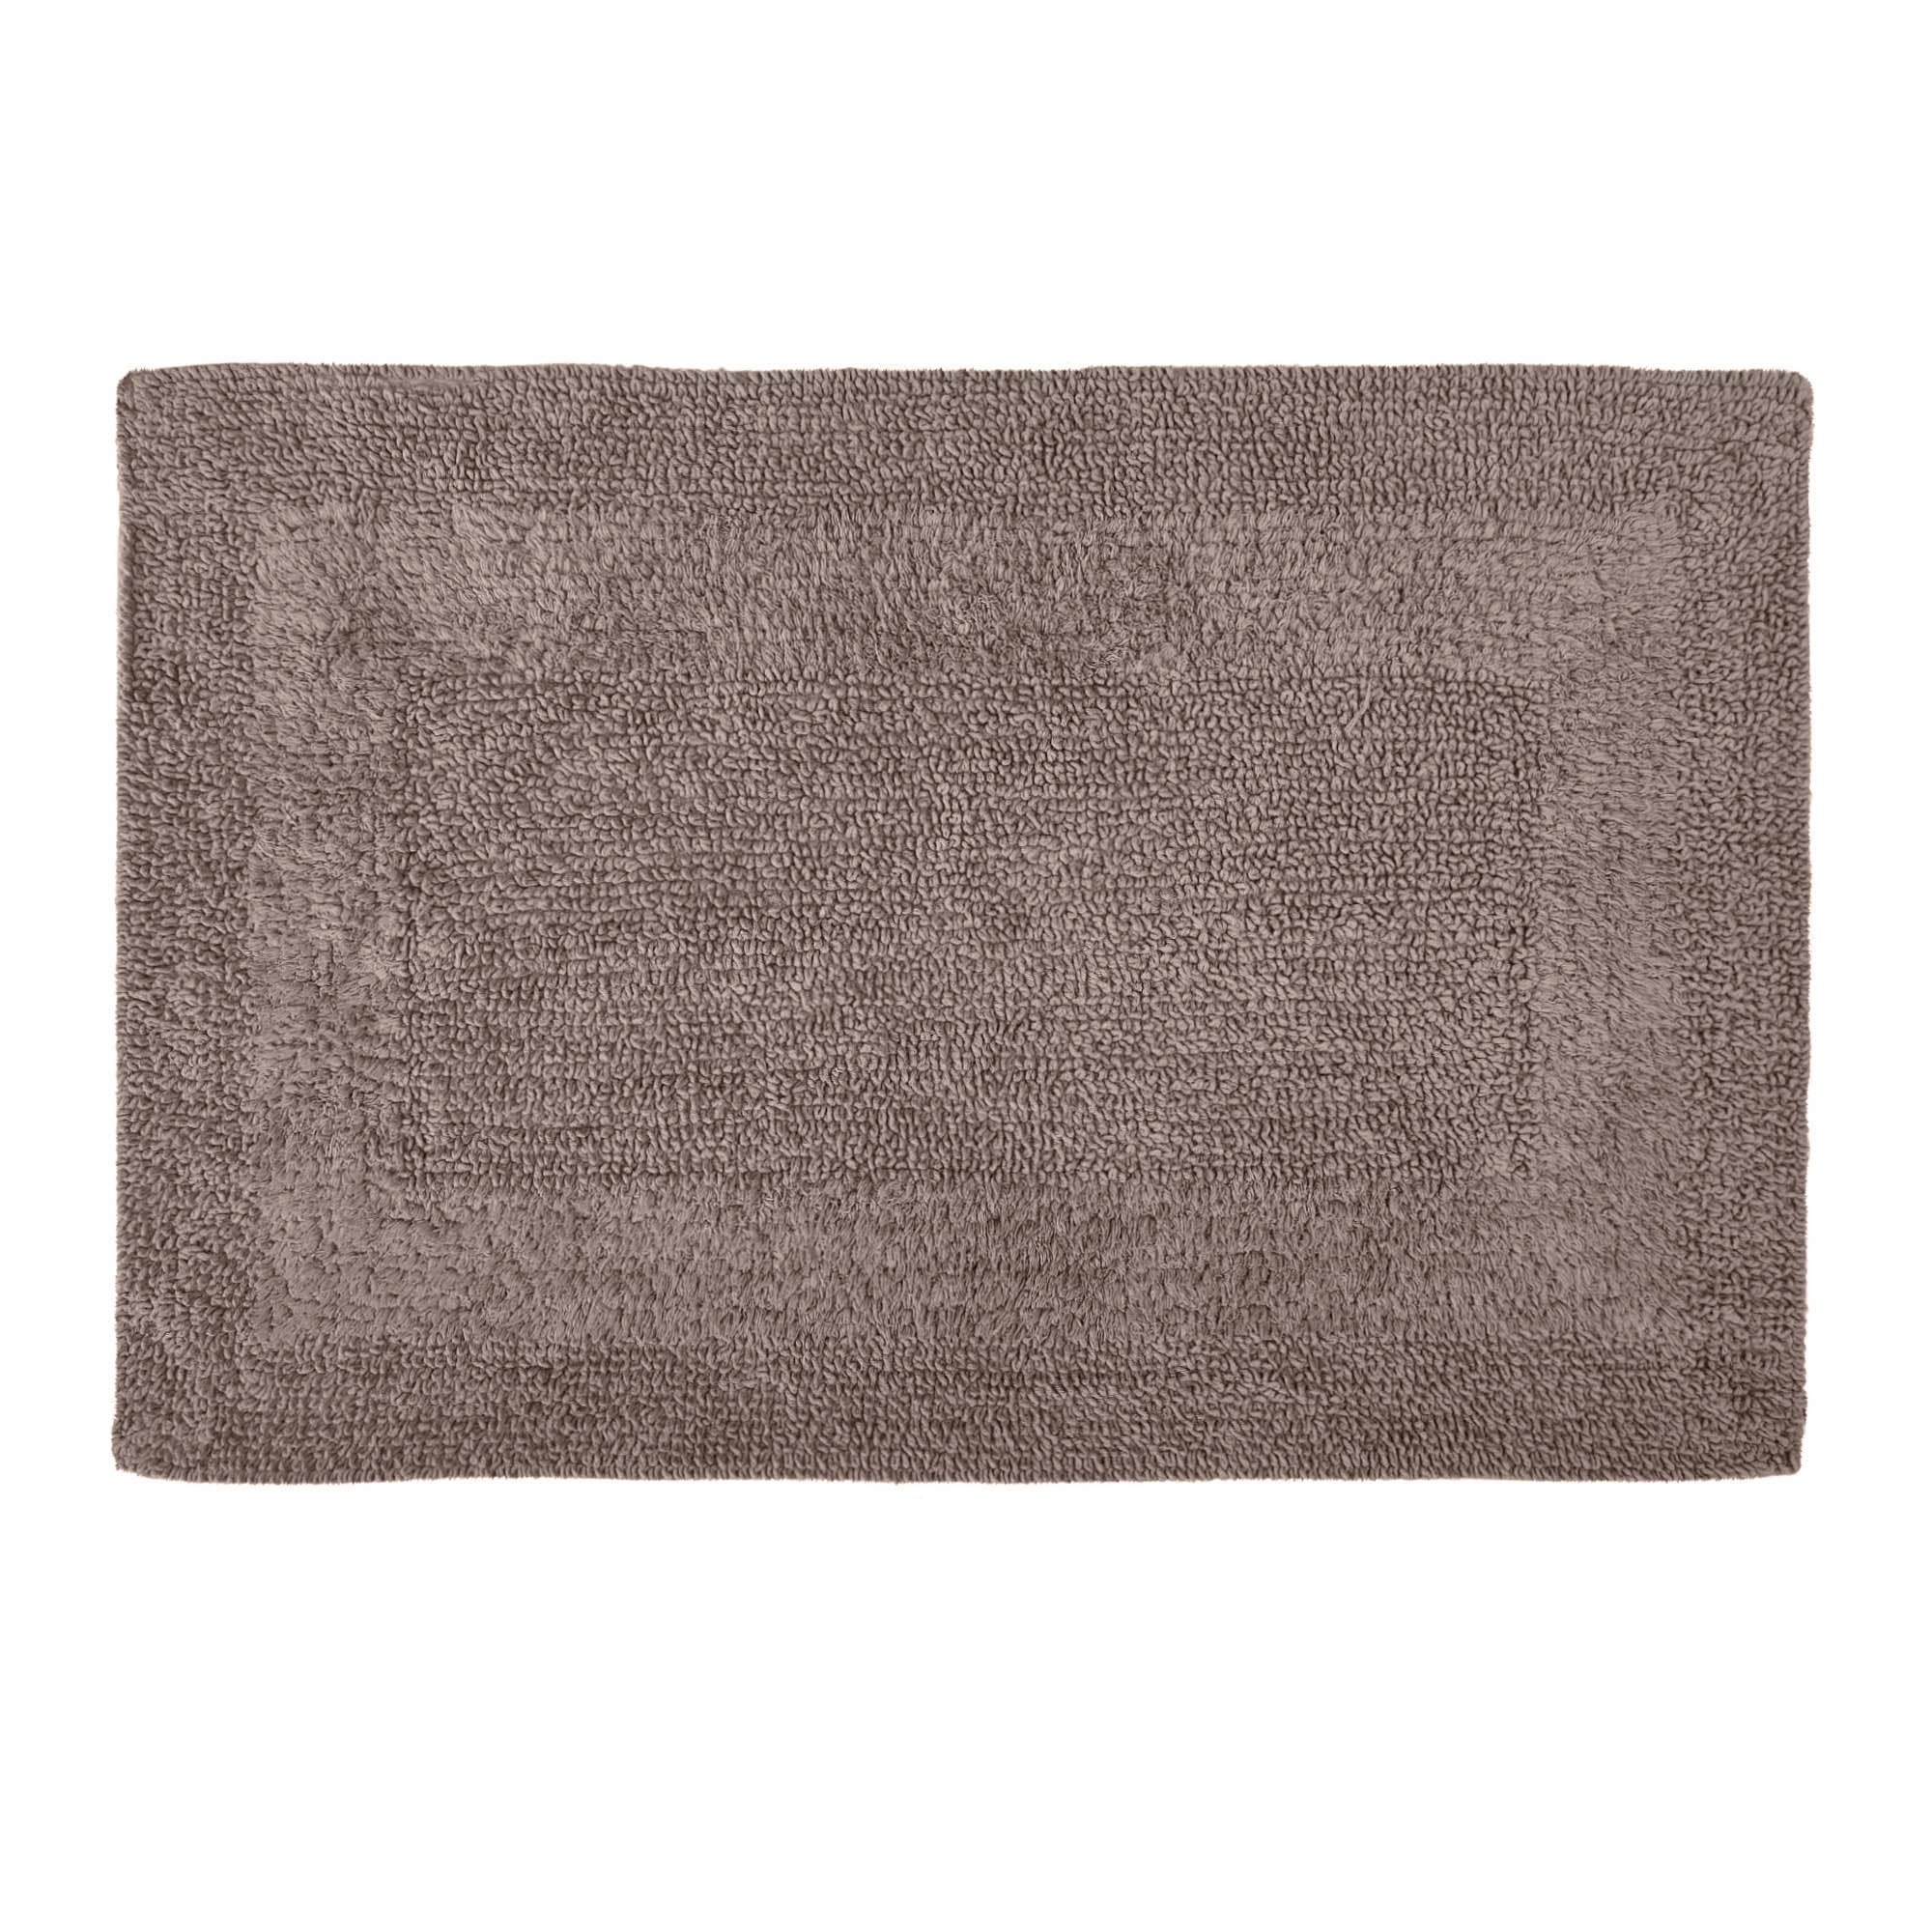 Super Soft Collection Reversible Bath Mat